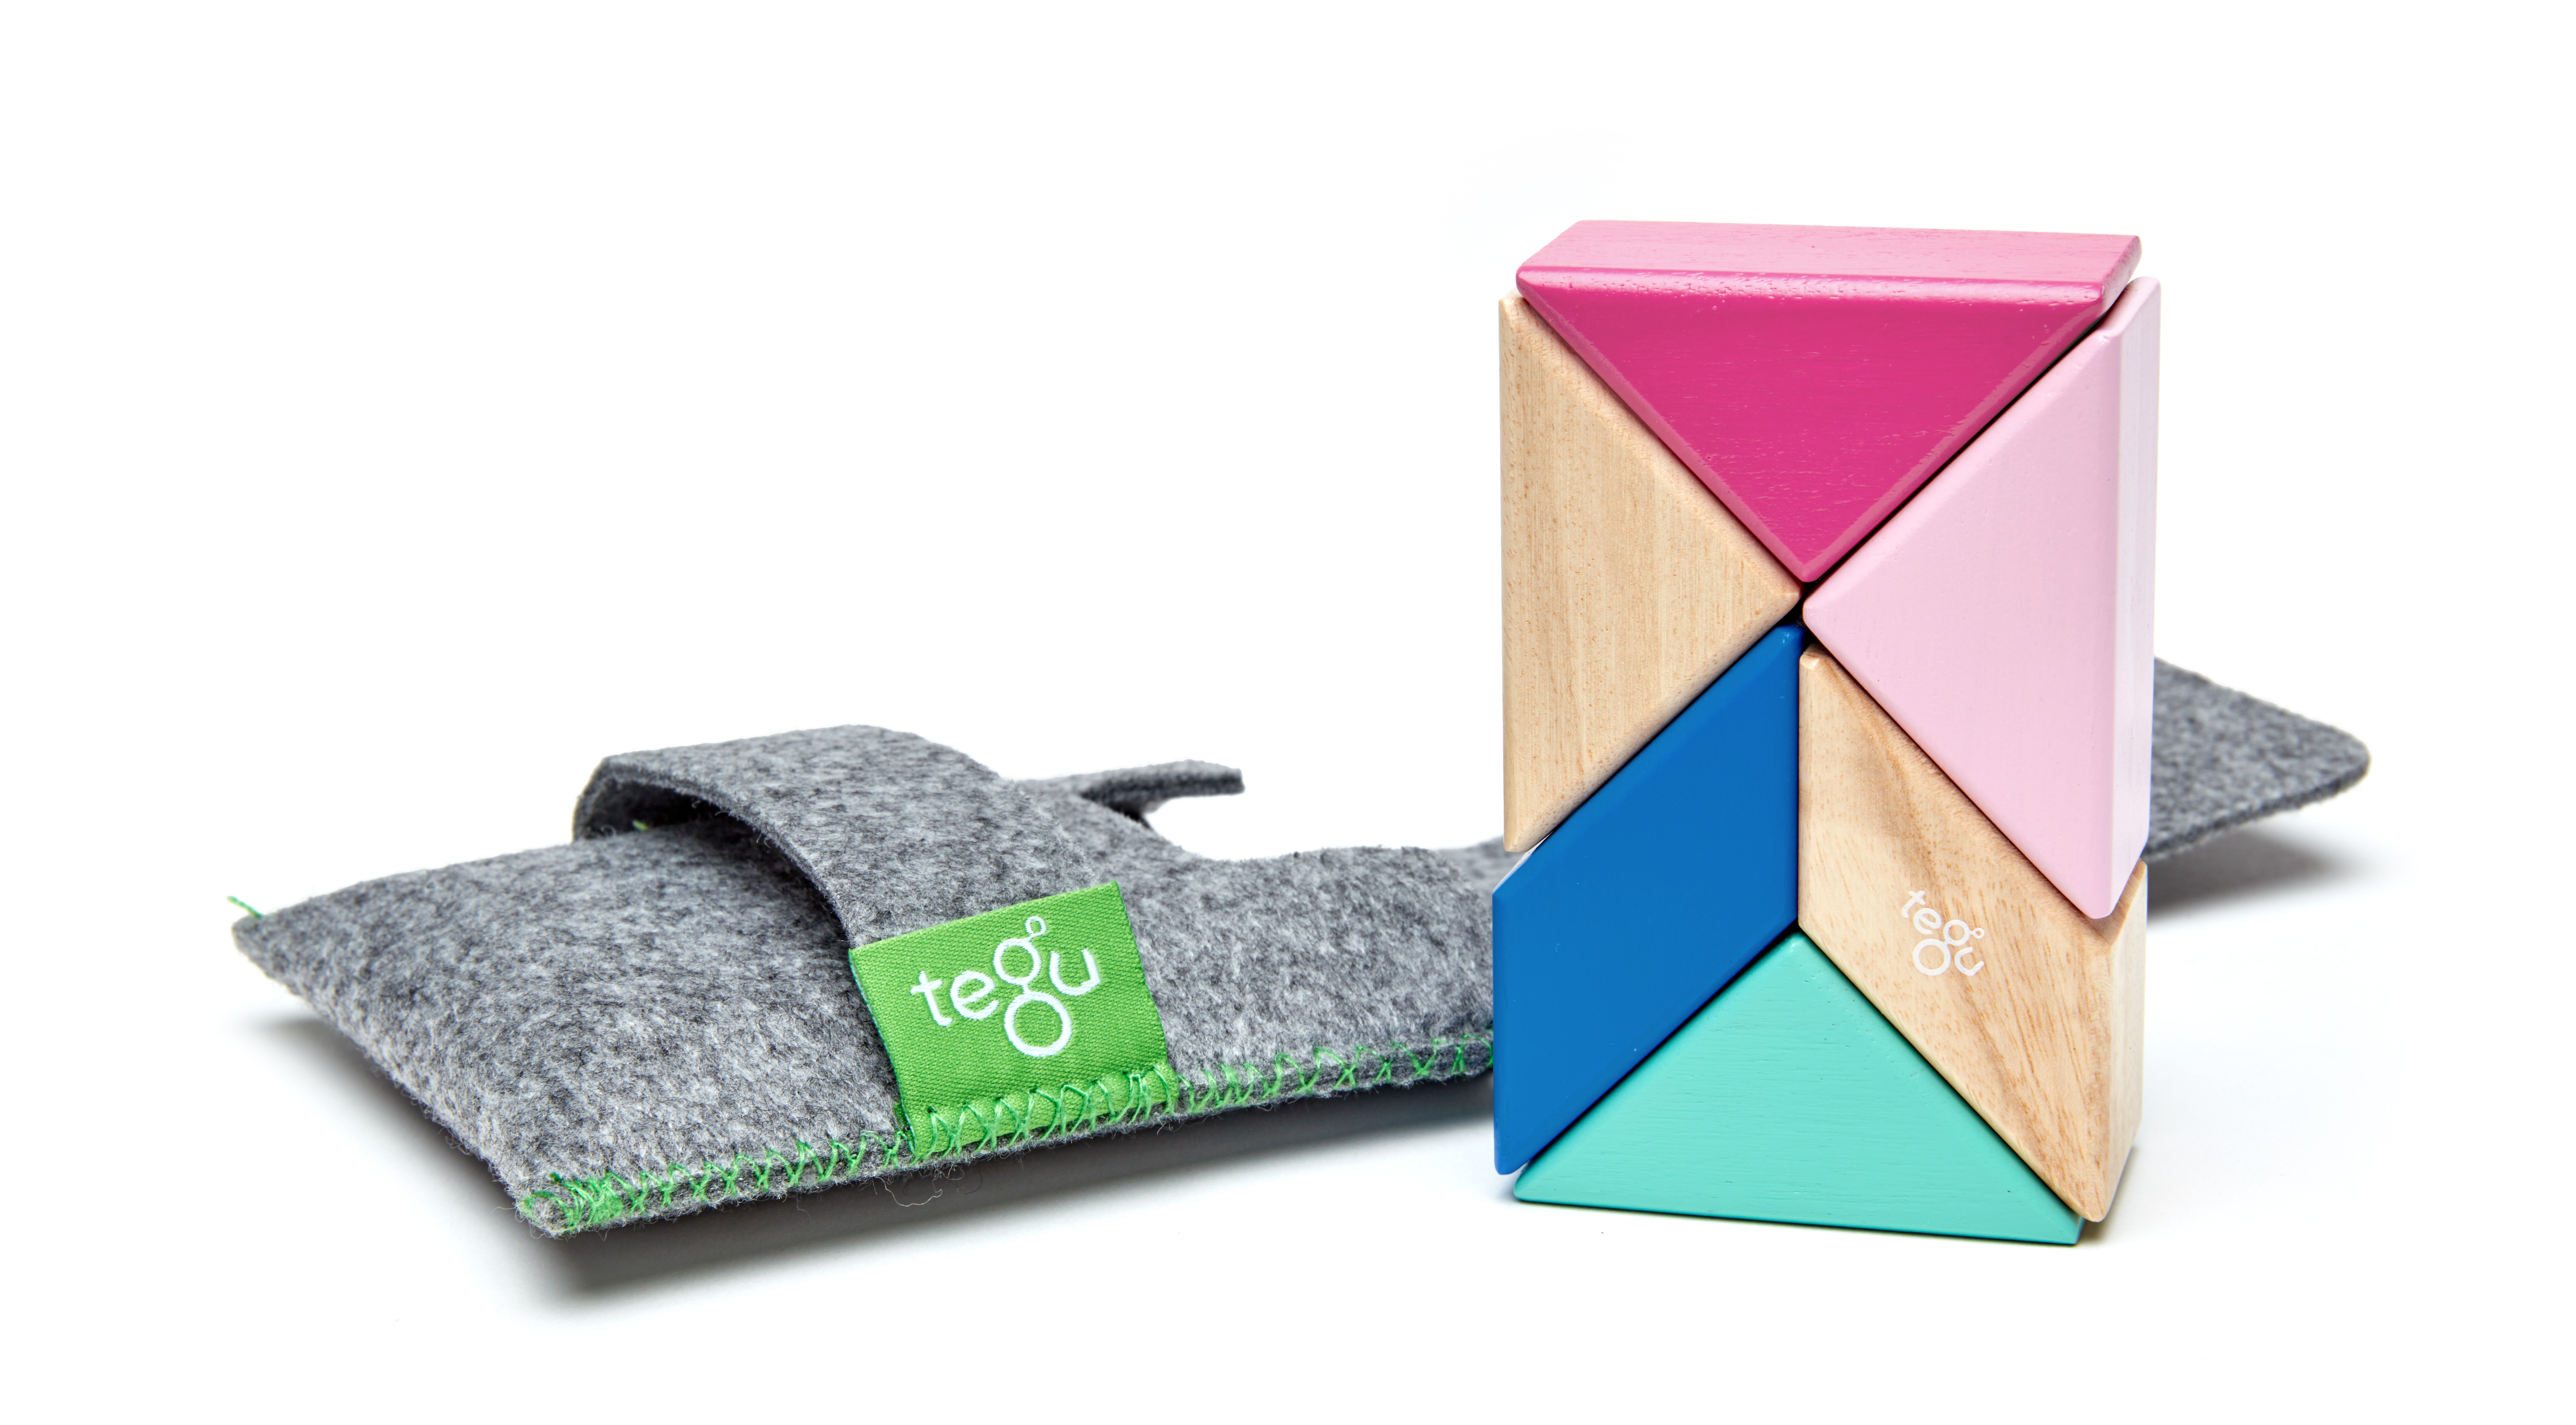 Tegu-pocket pouch prism in blossom